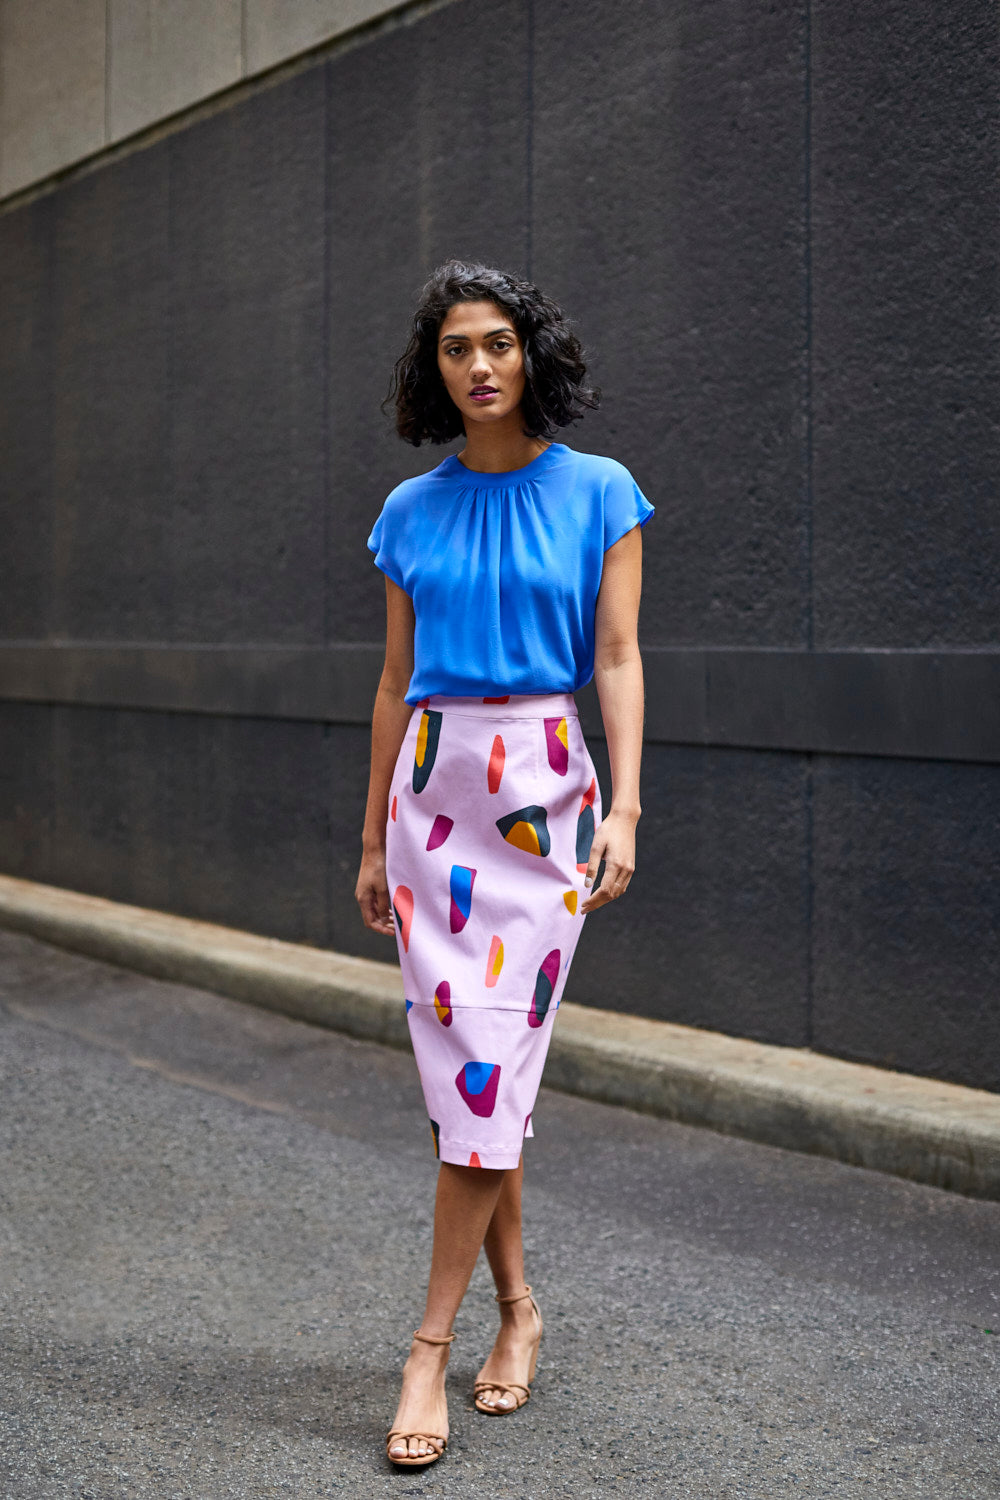 STRETCH COTTON PRINTED SKIRT MIDI LENGTH UNIQUE STYLE FUN BRIGHT FRONT